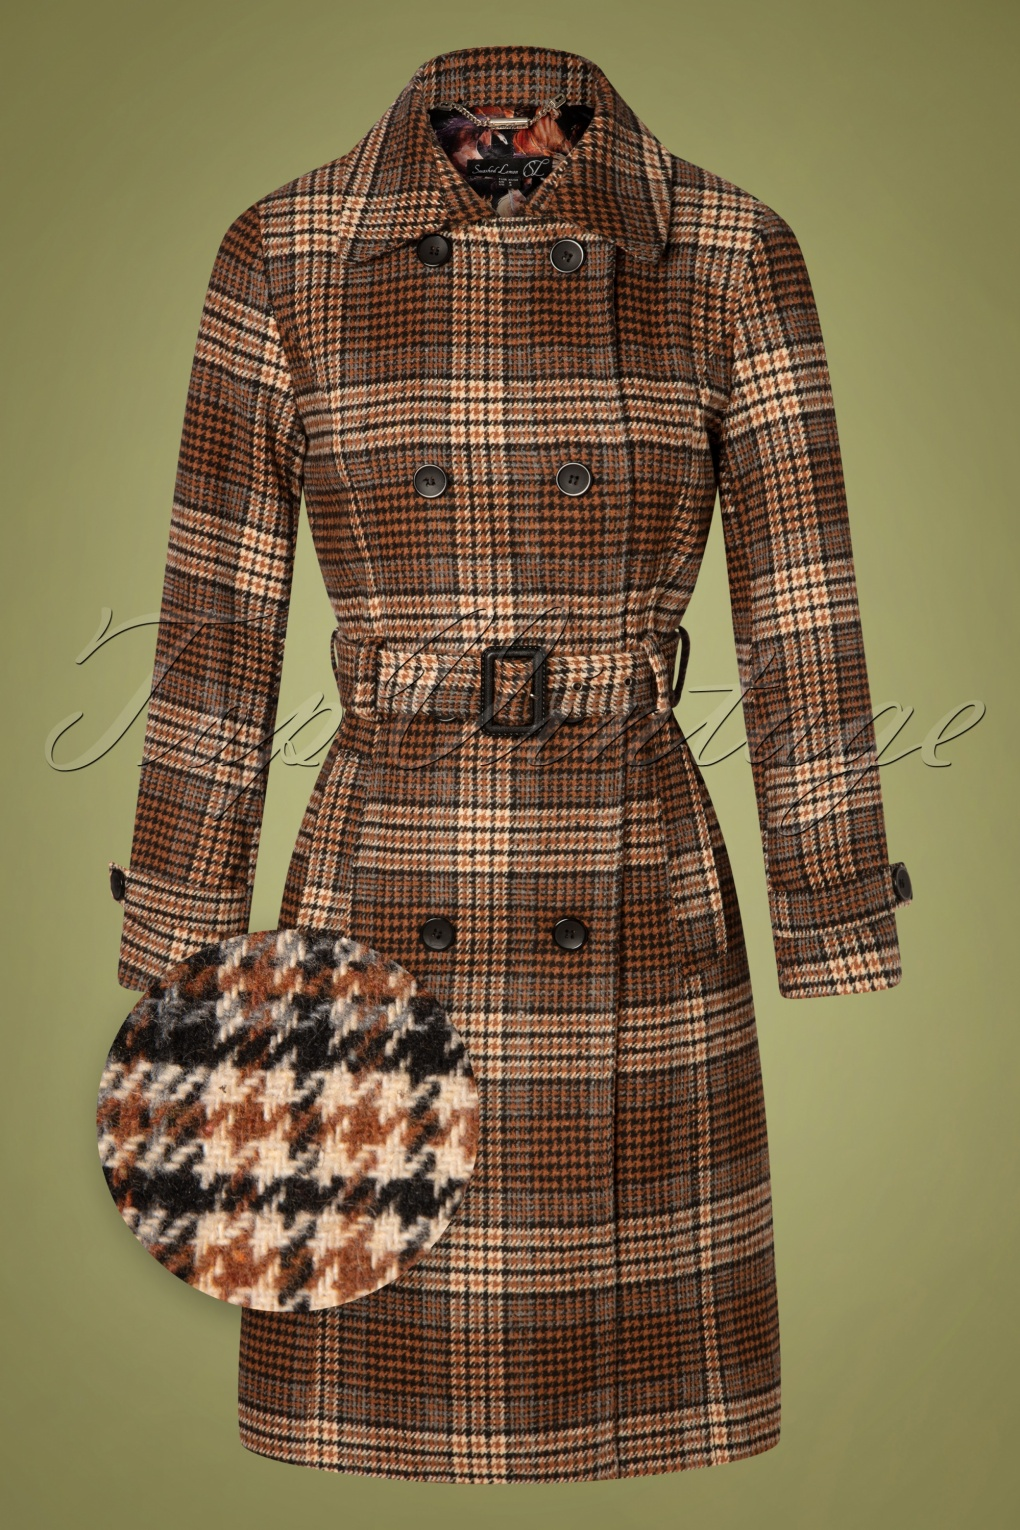 Vintage Coats & Jackets | Retro Coats and Jackets 60s Brielle Check Coat in Brown £127.59 AT vintagedancer.com